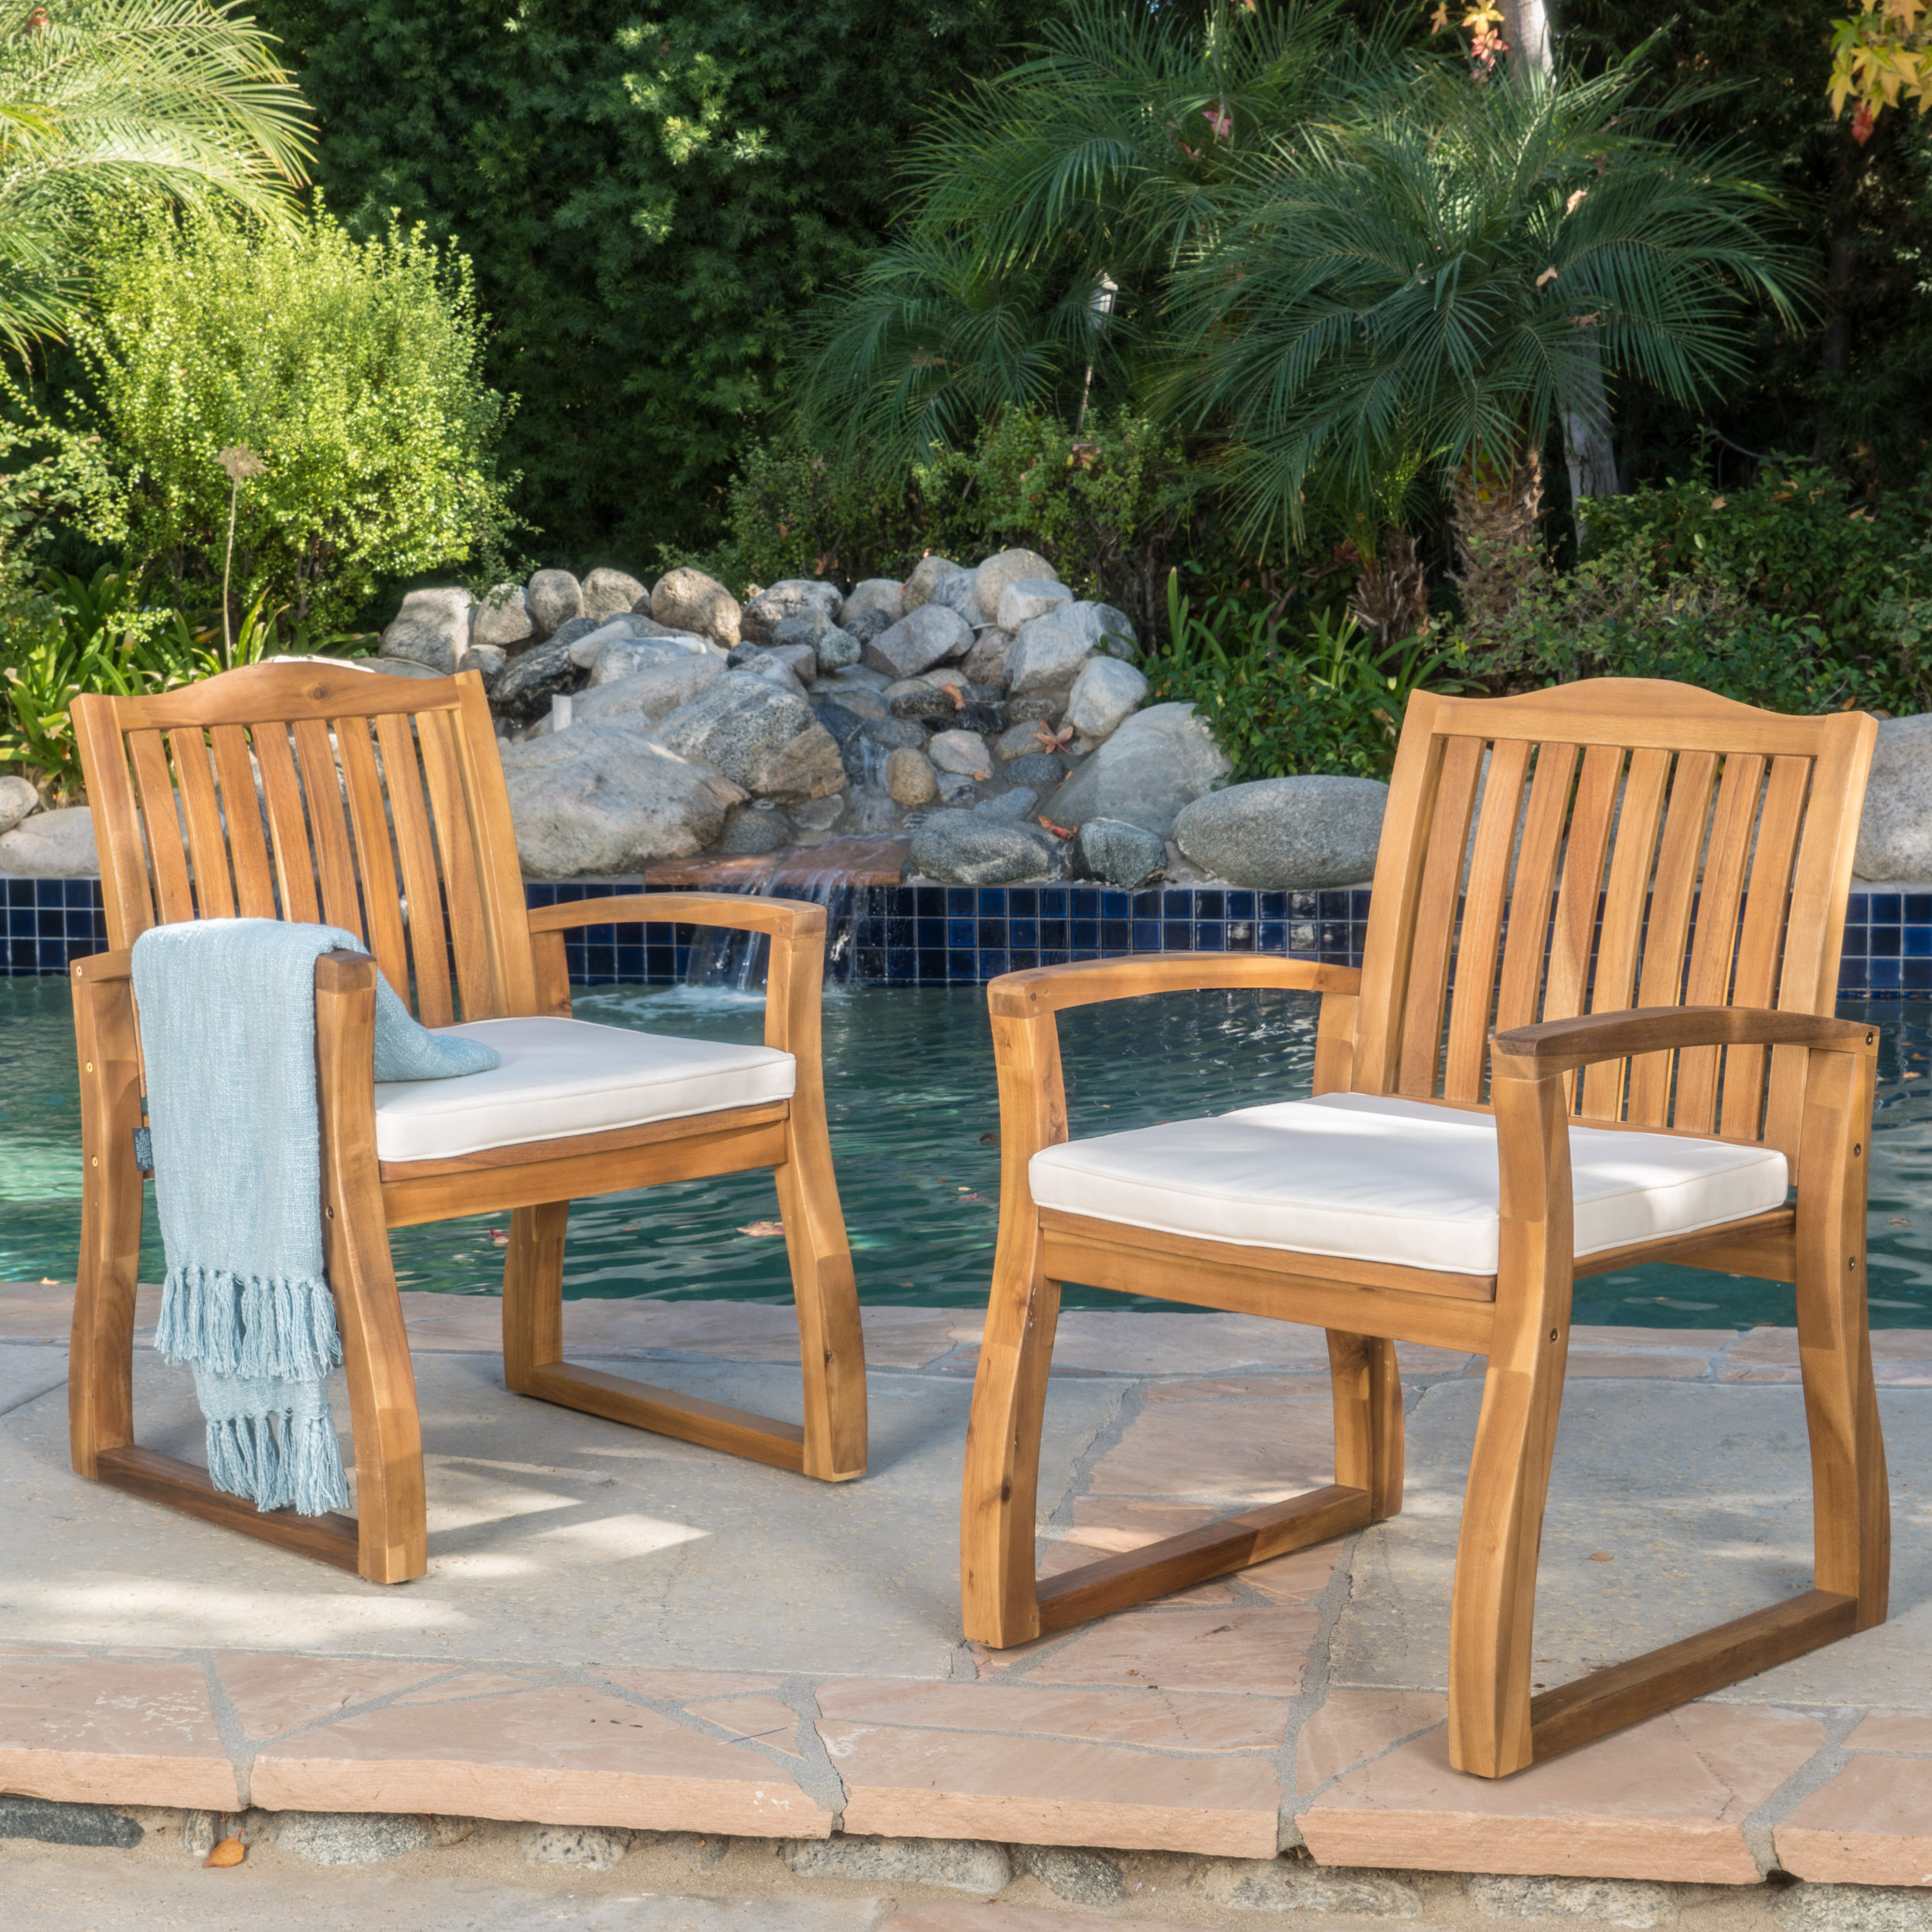 Pearl Outdoor Acacia Wood Dining Chairs, Set of 2, Teak Finish by Noble House